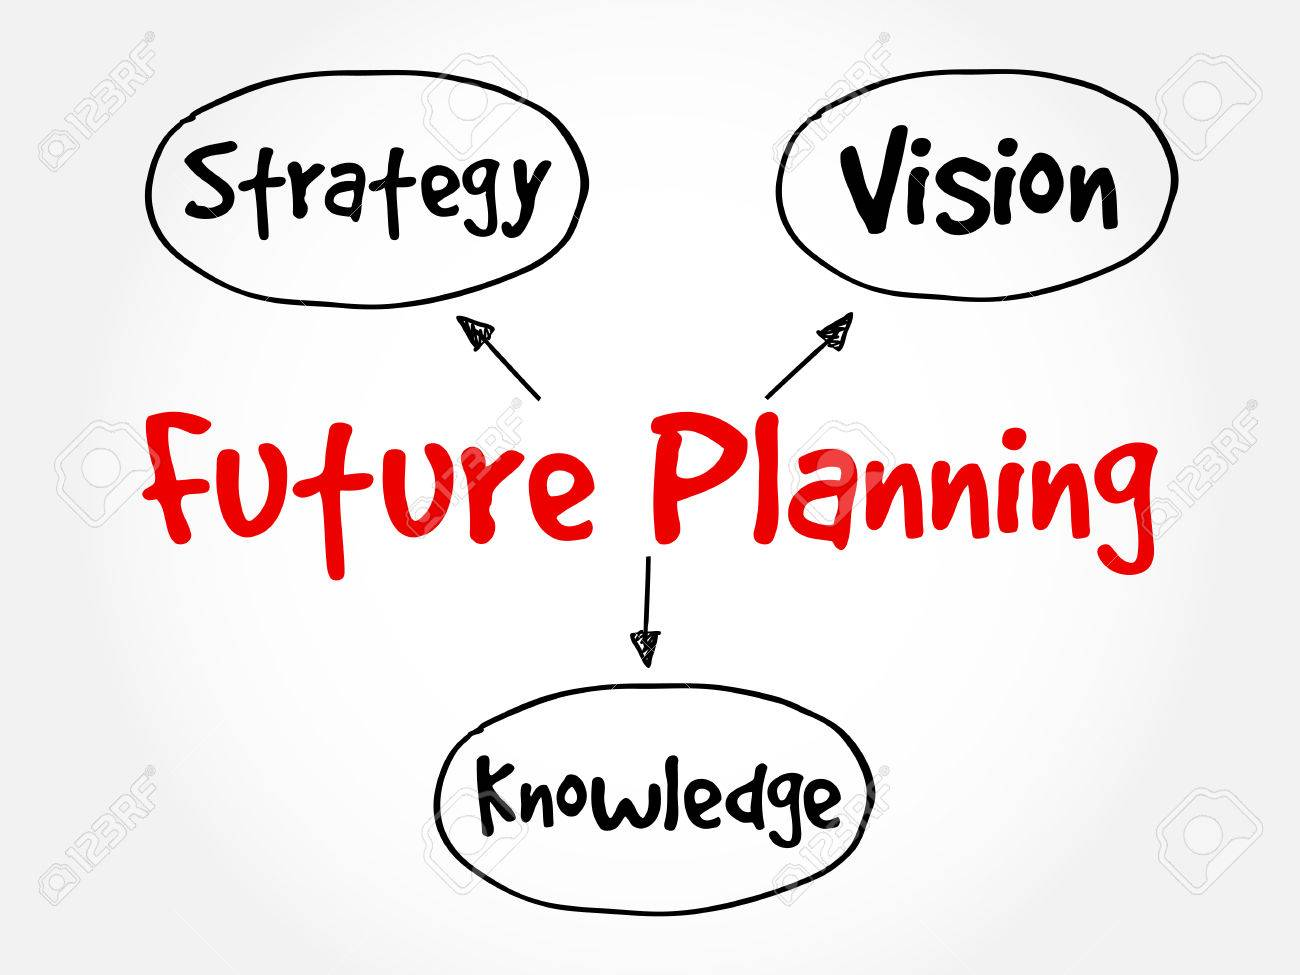 Future planning knowledge strategy vision mind map flowchart future planning knowledge strategy vision mind map flowchart business concept for presentations nvjuhfo Images